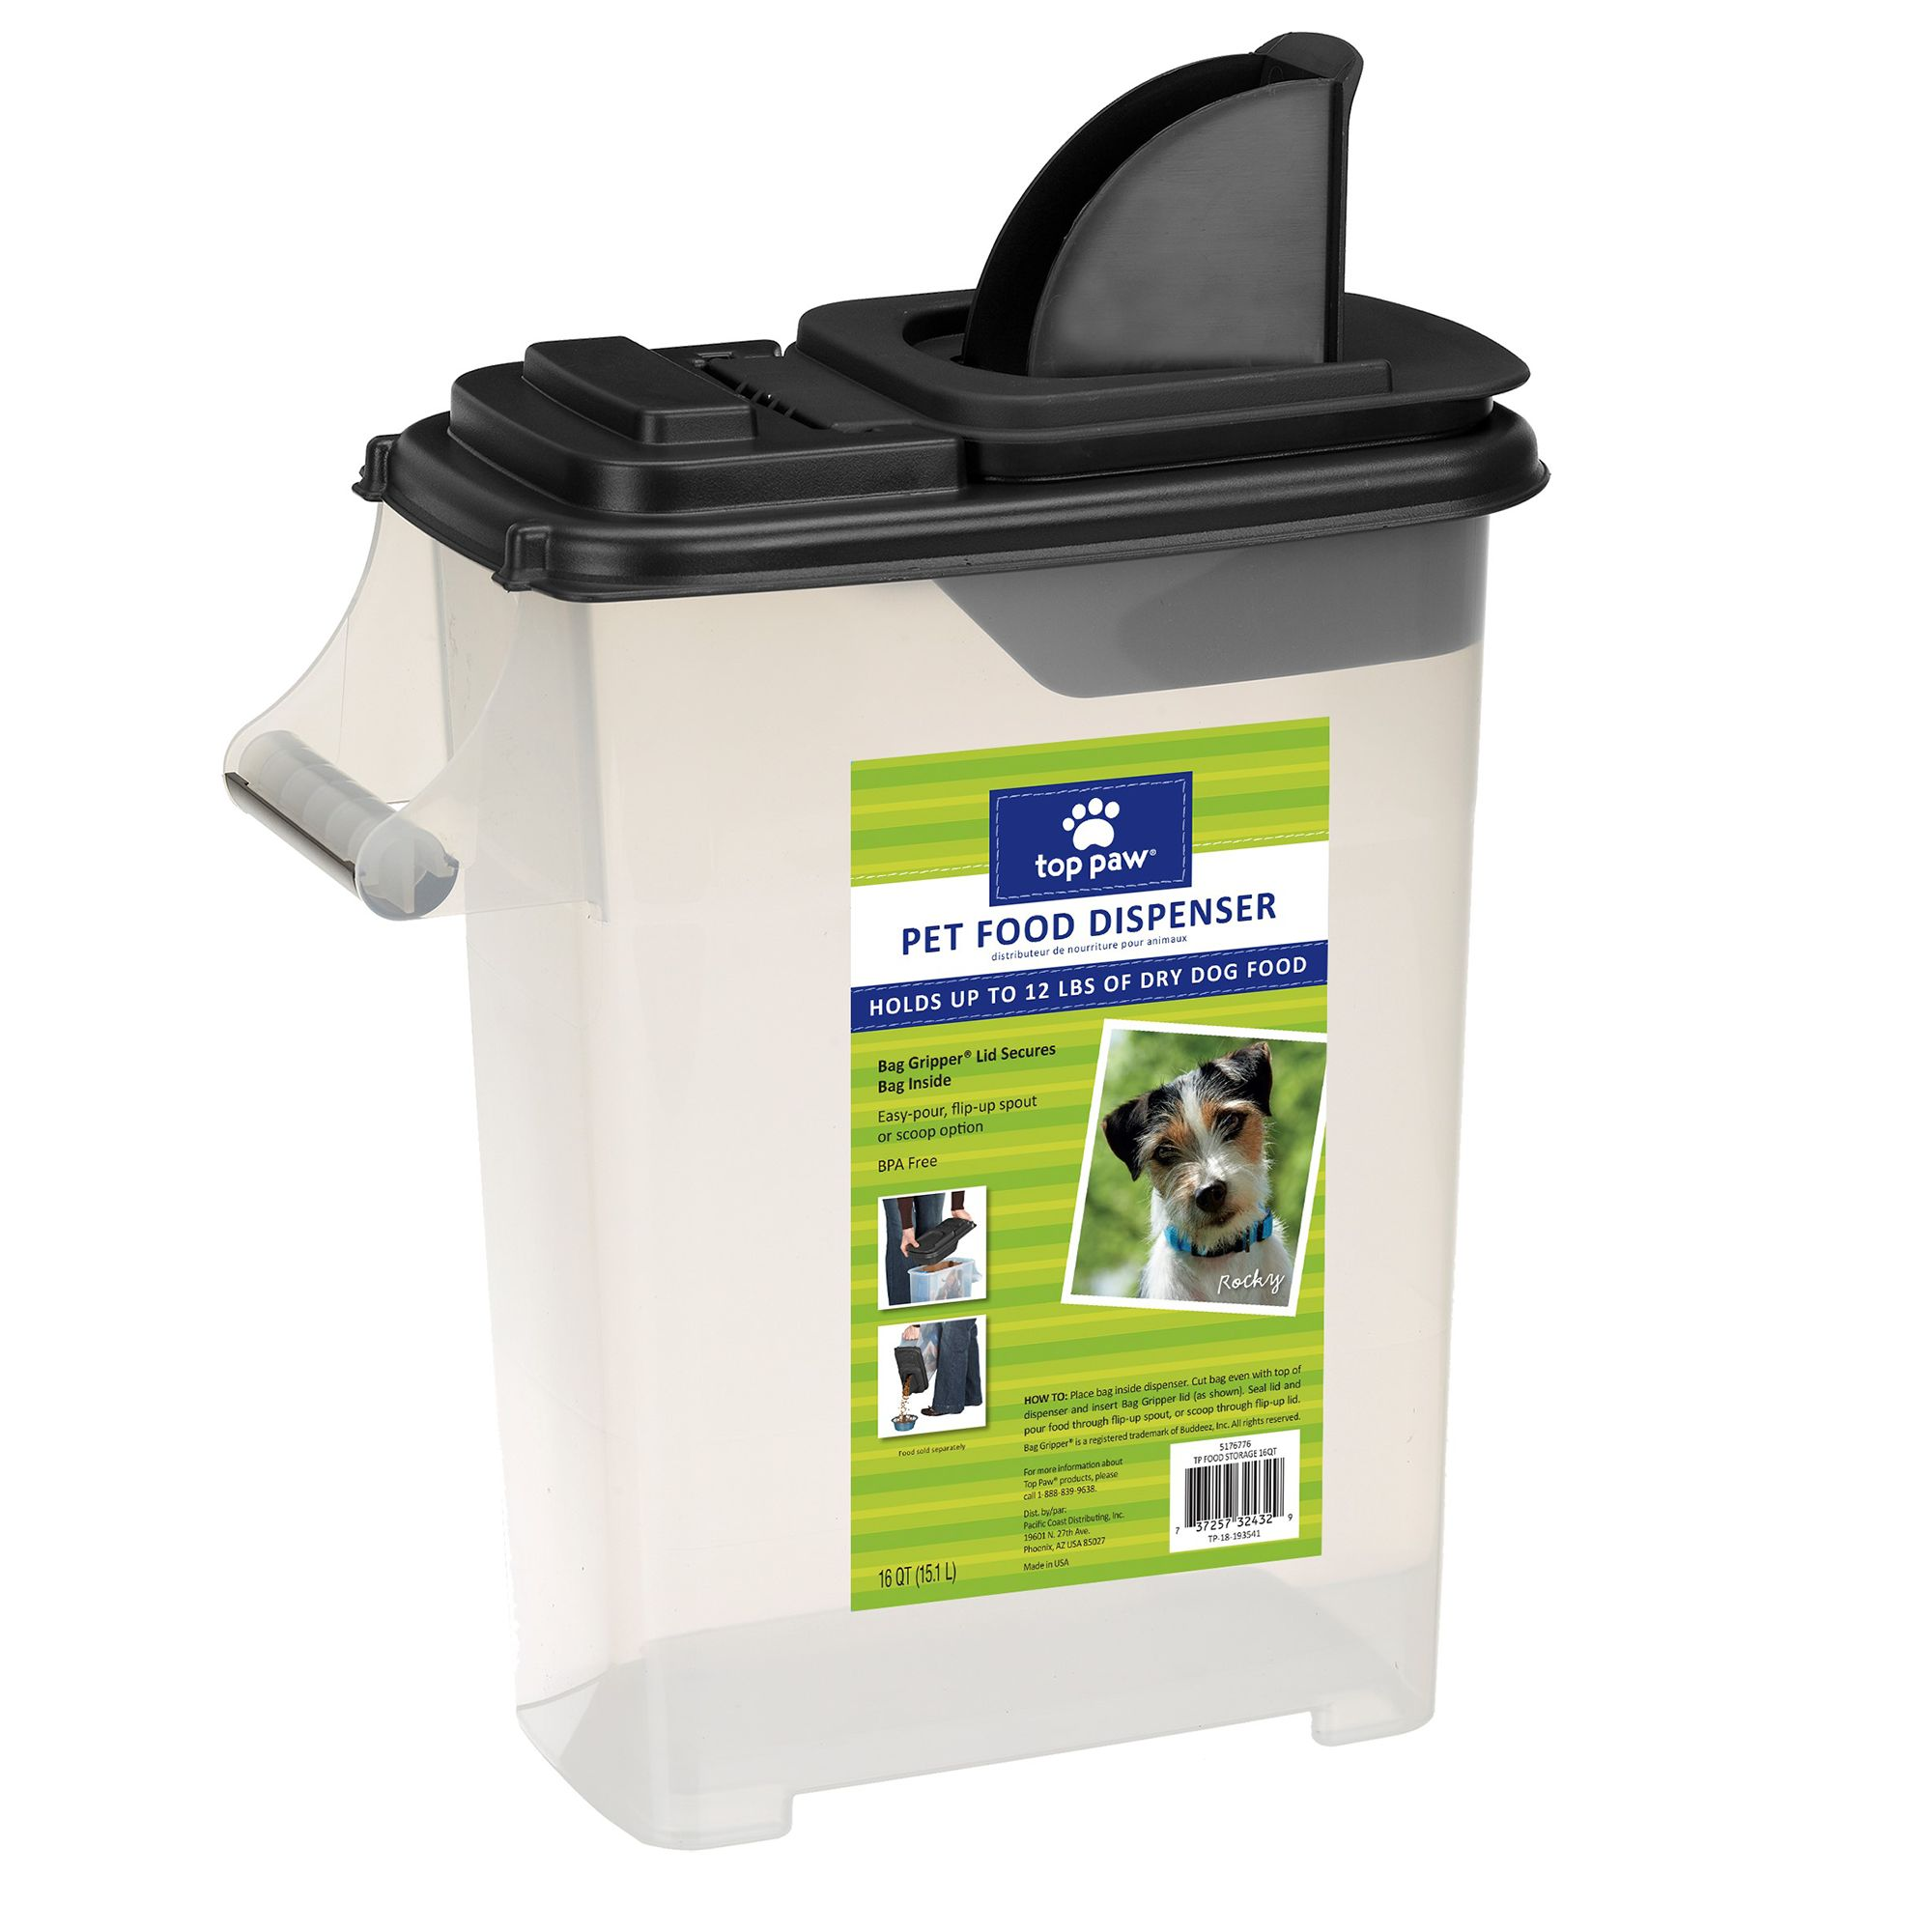 Dog Food Containers Scoops Food Treat Storage PetSmart